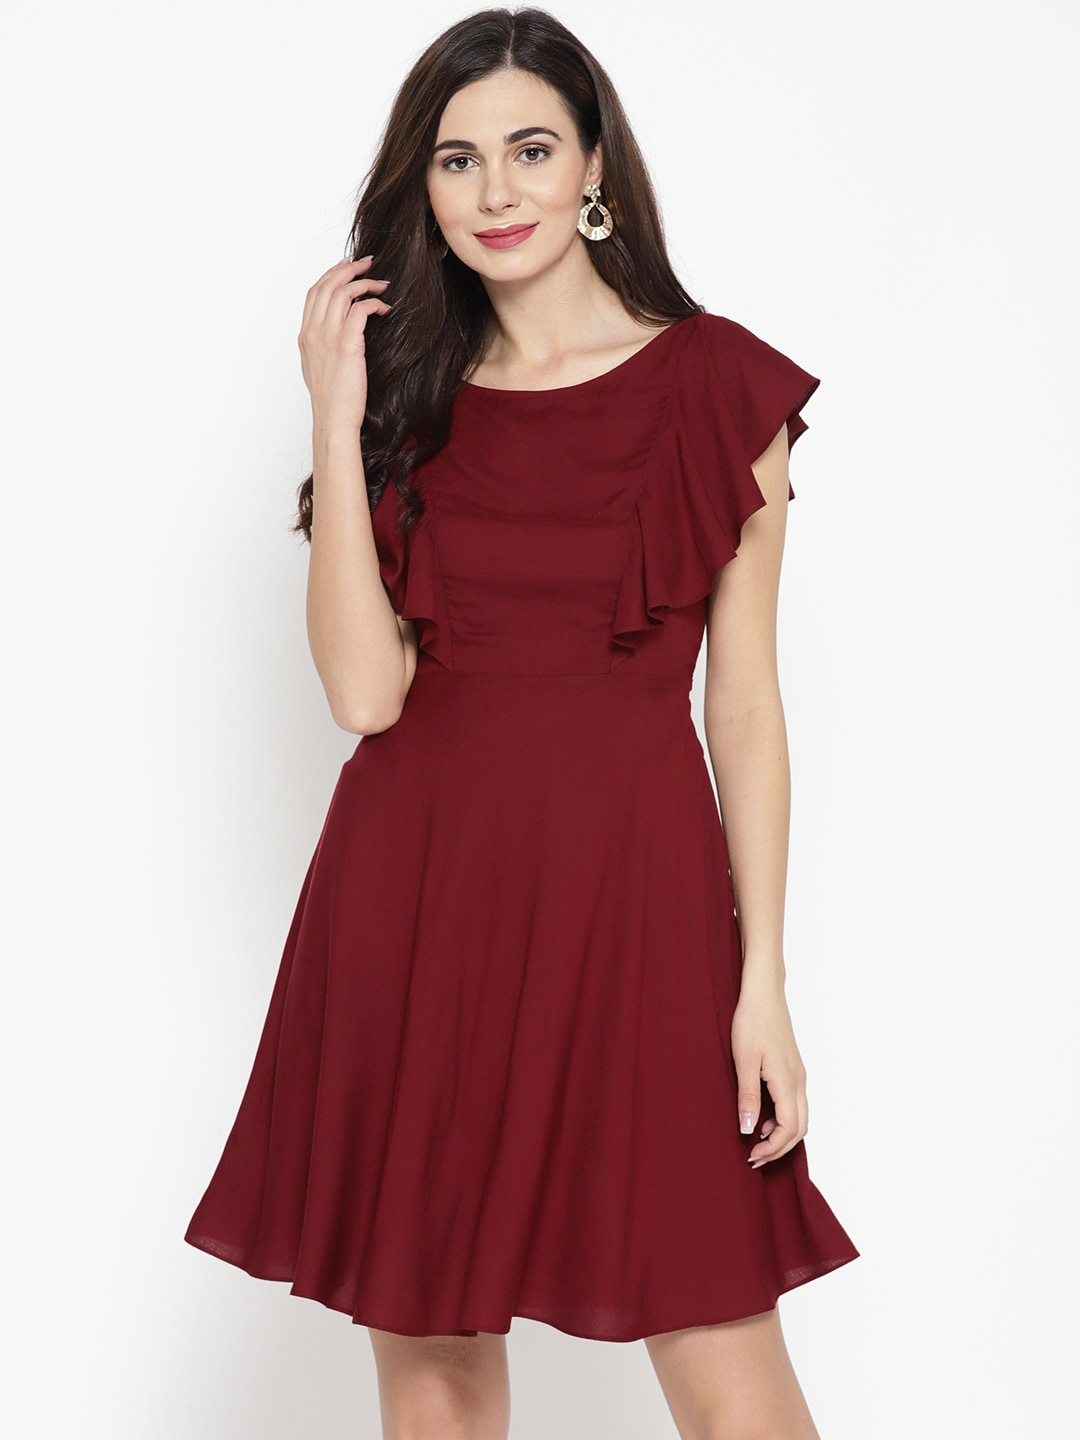 eb1d16df7 Ruffle Dresses - Buy Ruffle Dresses online in India